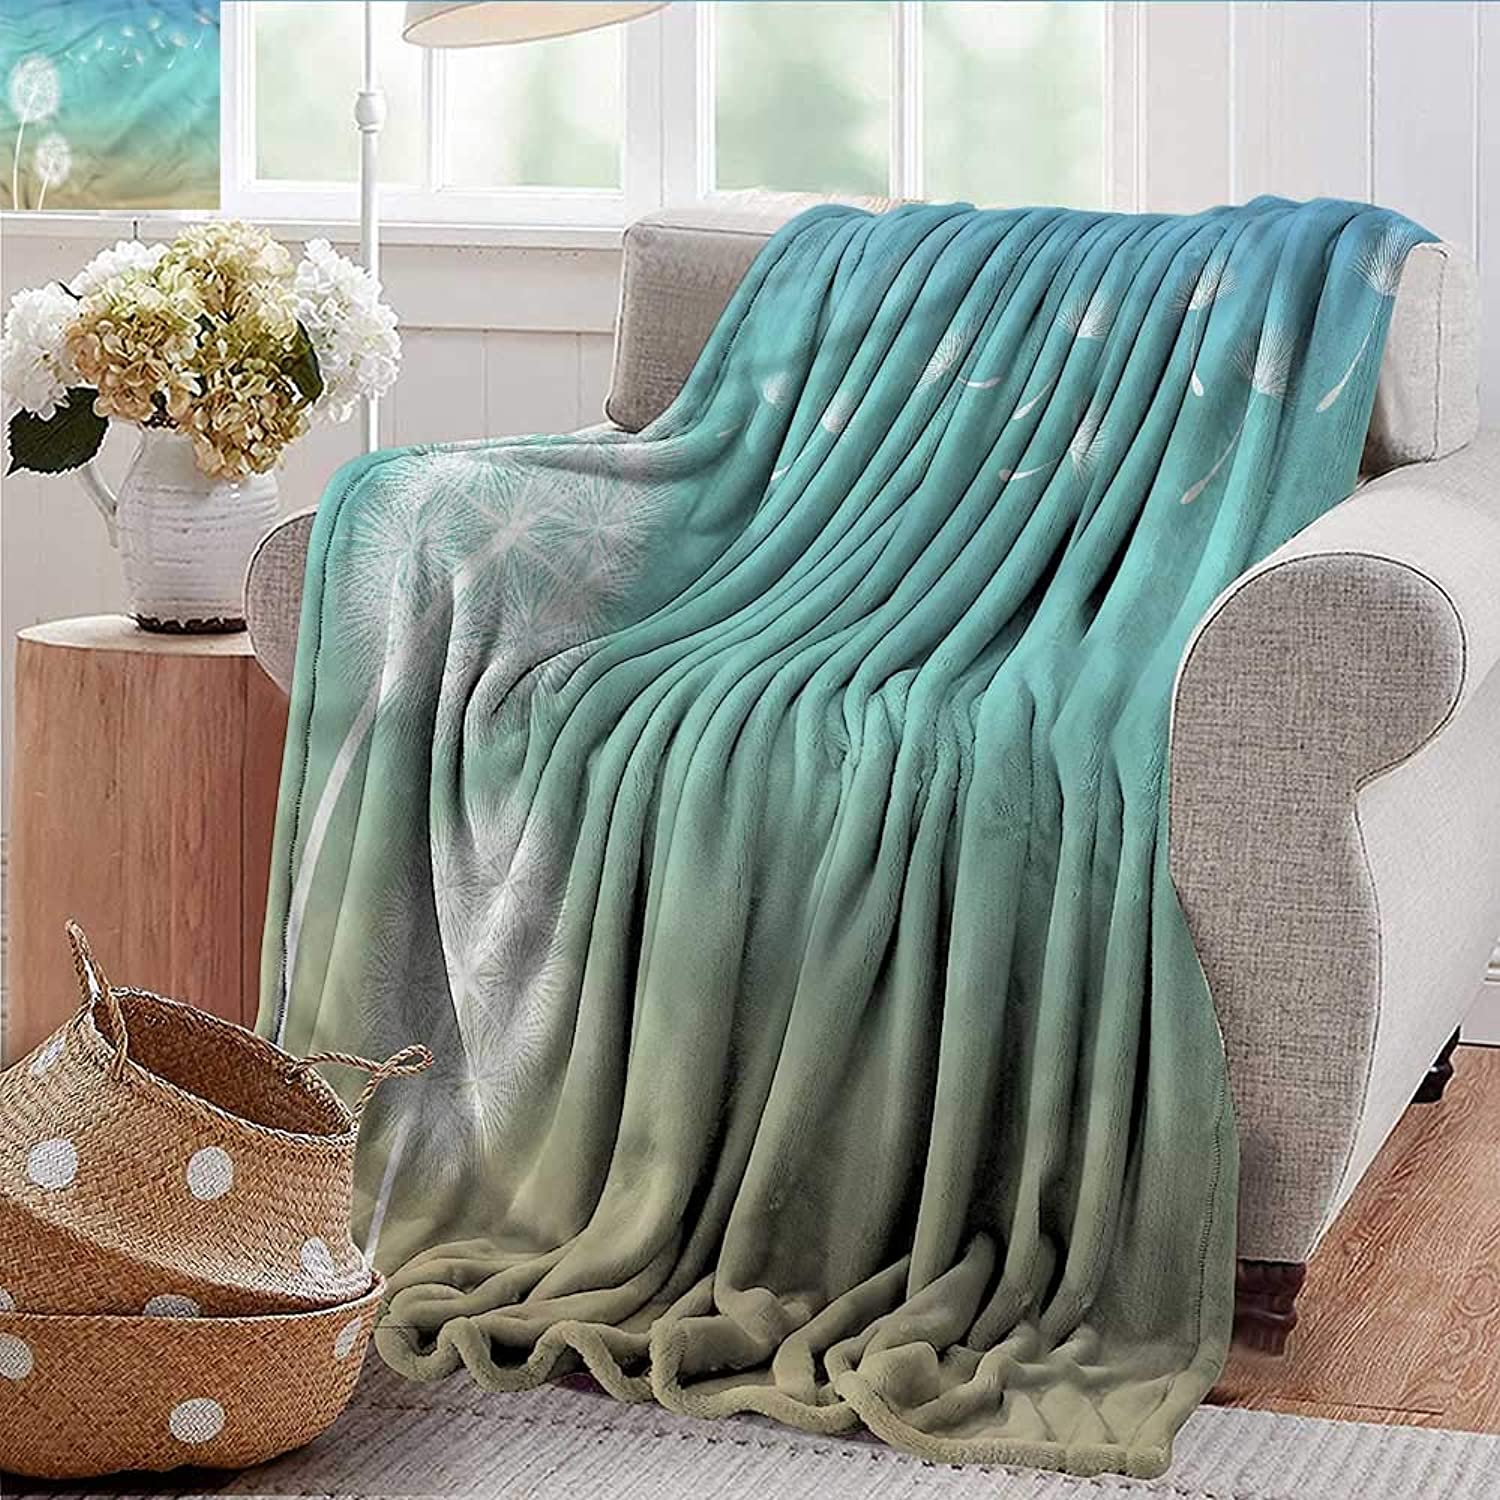 Xaviera Doherty Weighted Blanket for Kids Dandelion,Blowball on Wind Soft Summer Cooling Lightweight Bed Blanket 50 x60